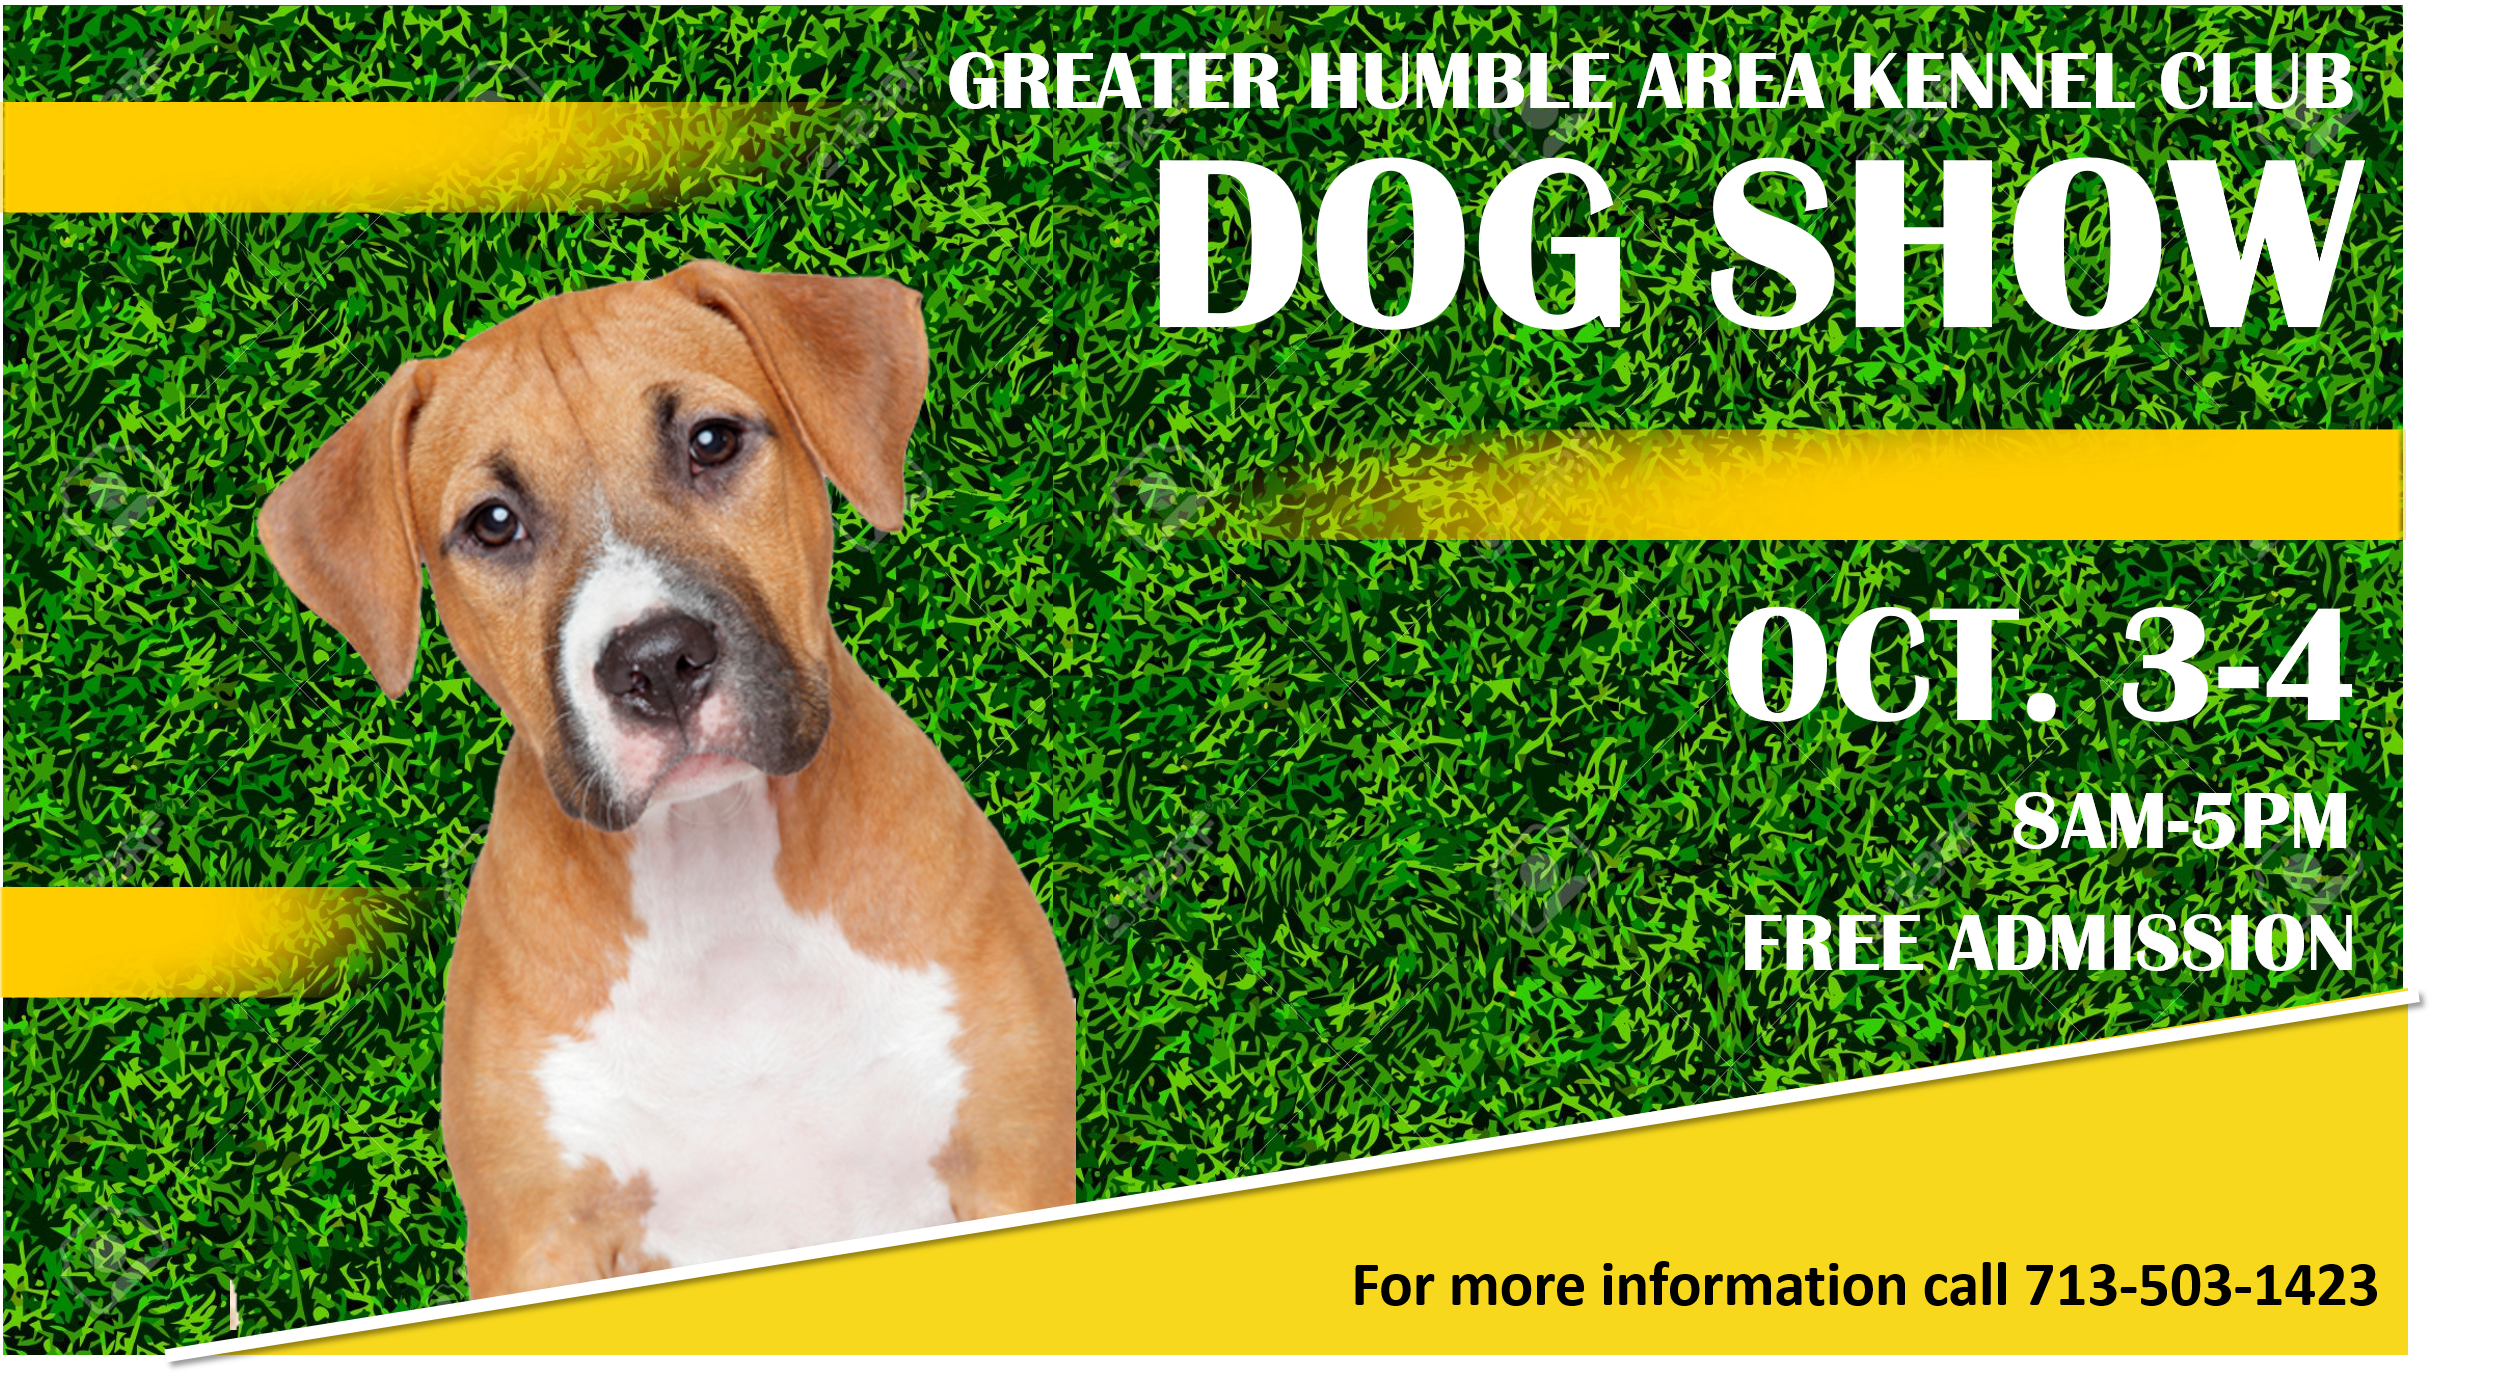 GREATER HUMBLE AREA KENNEL CLUB DOG SHOW